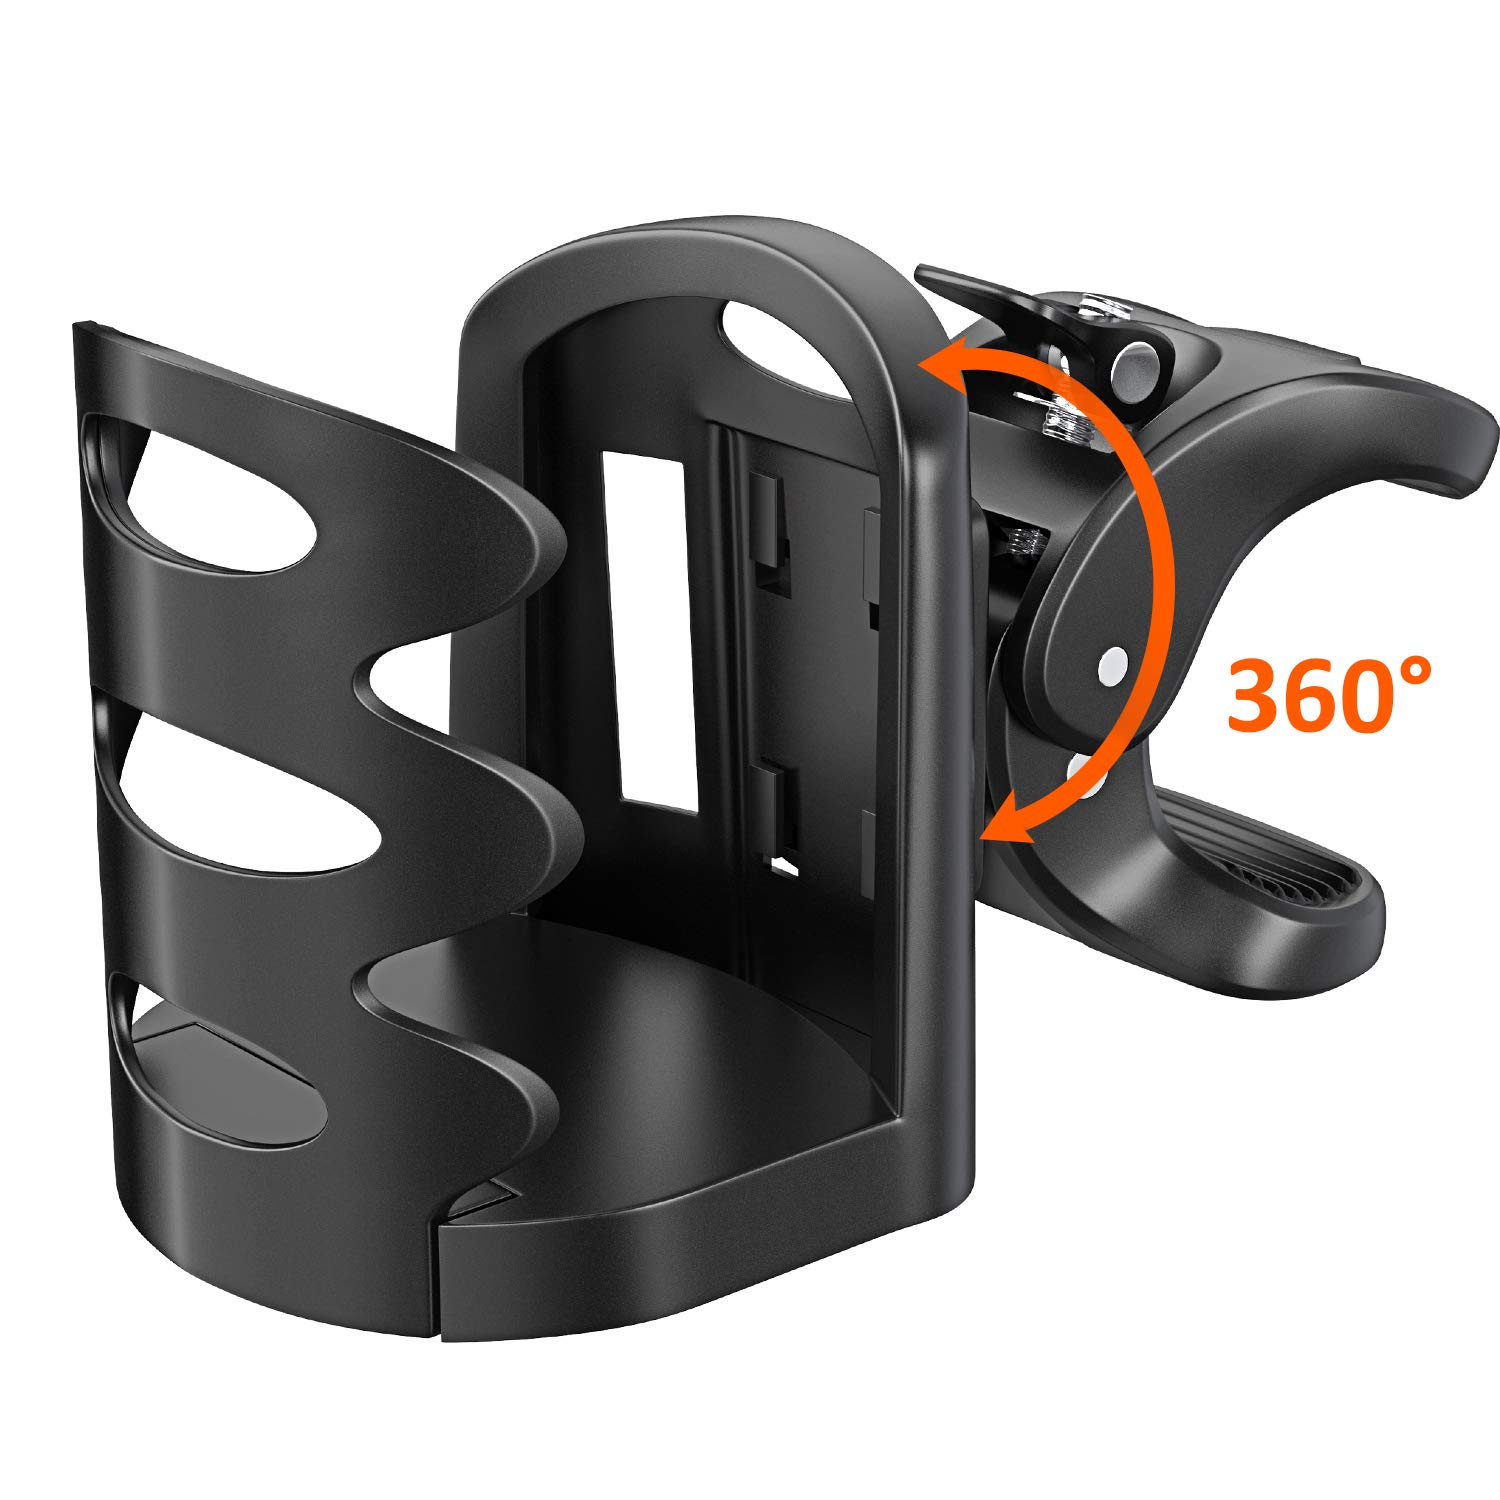 Stroller Cup Holder, Cocoda 360° Rotatable Universal Bike Bottle Holder Antislip Adjustable Water Drink Cage for Bike, Baby Stroller, Pushchair, Bicycle, Wheelchair, Motorcycle SCH-1